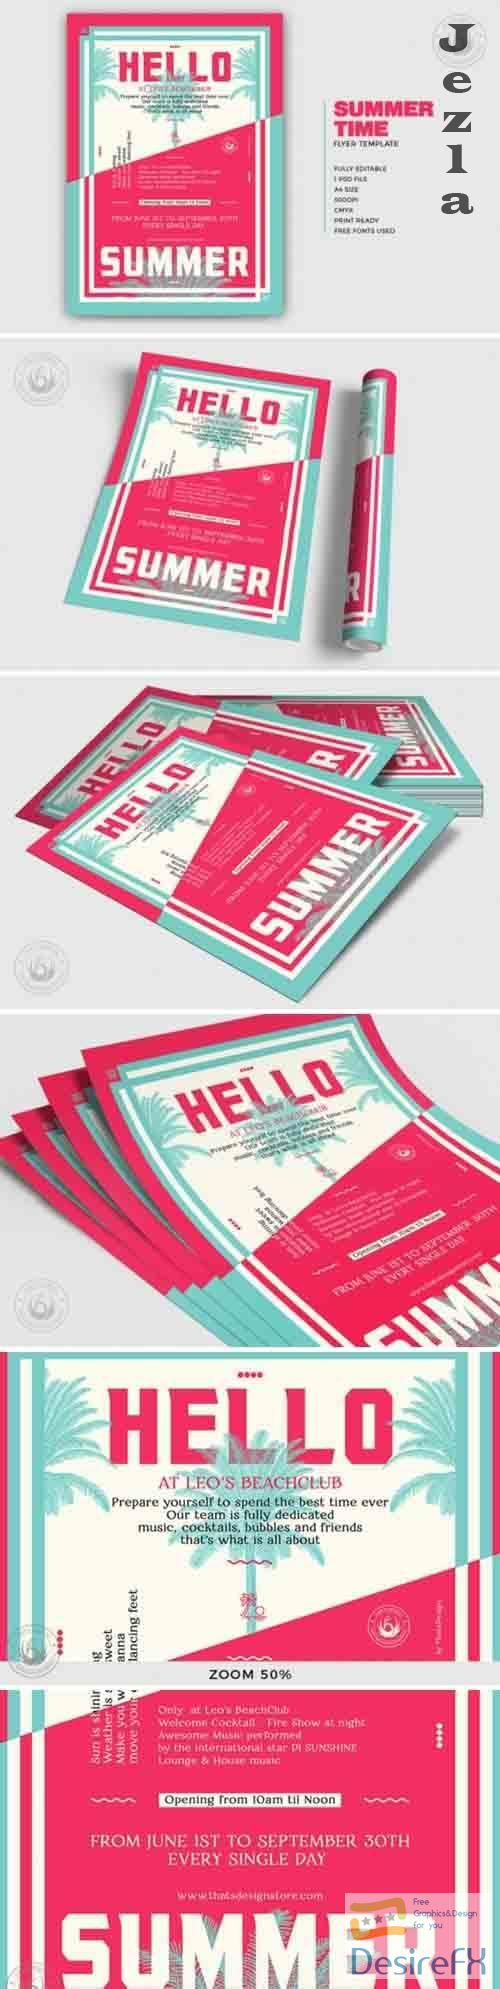 Summertime Flyer Template V4 - 4905809